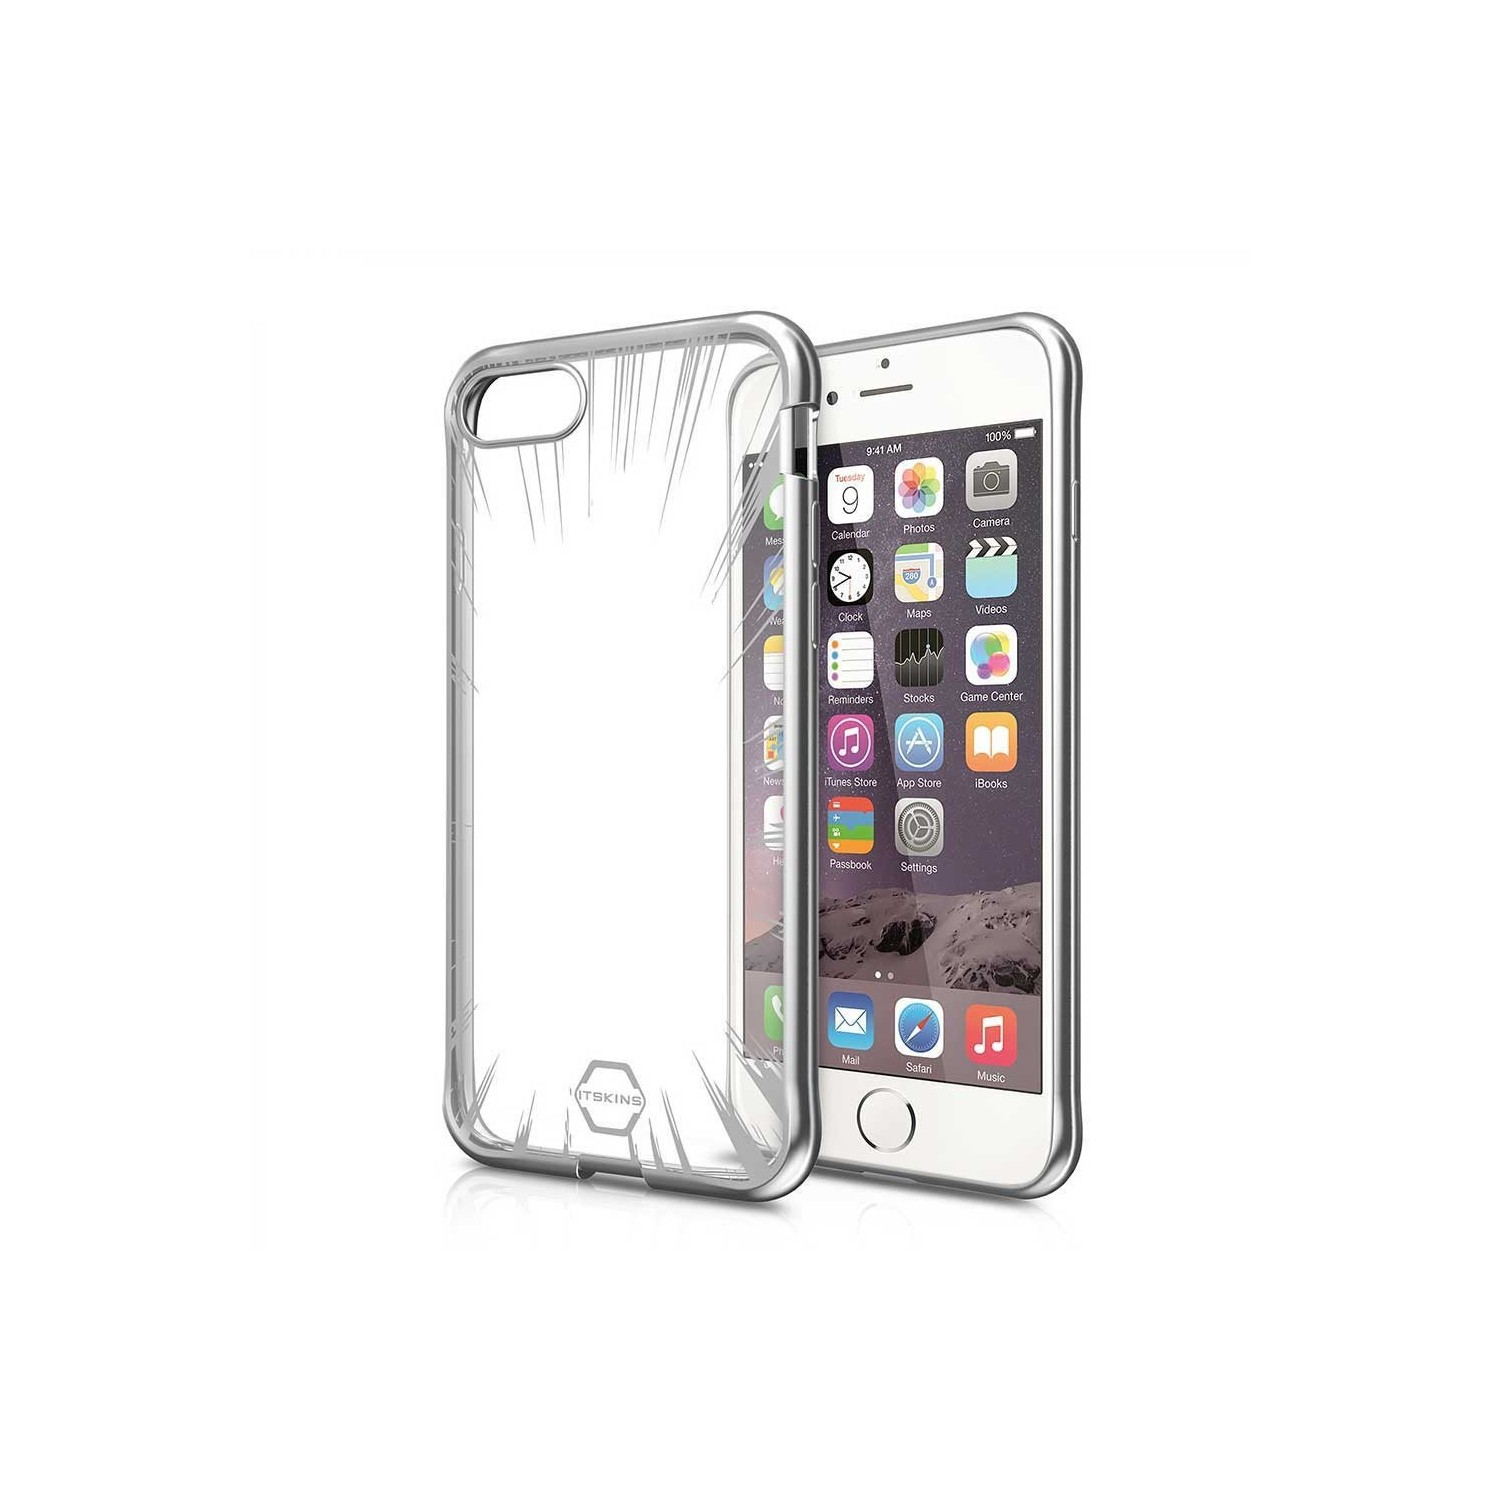 Case - ITSKINS Artgel case for iPhone 8 / 7 - Space Gray